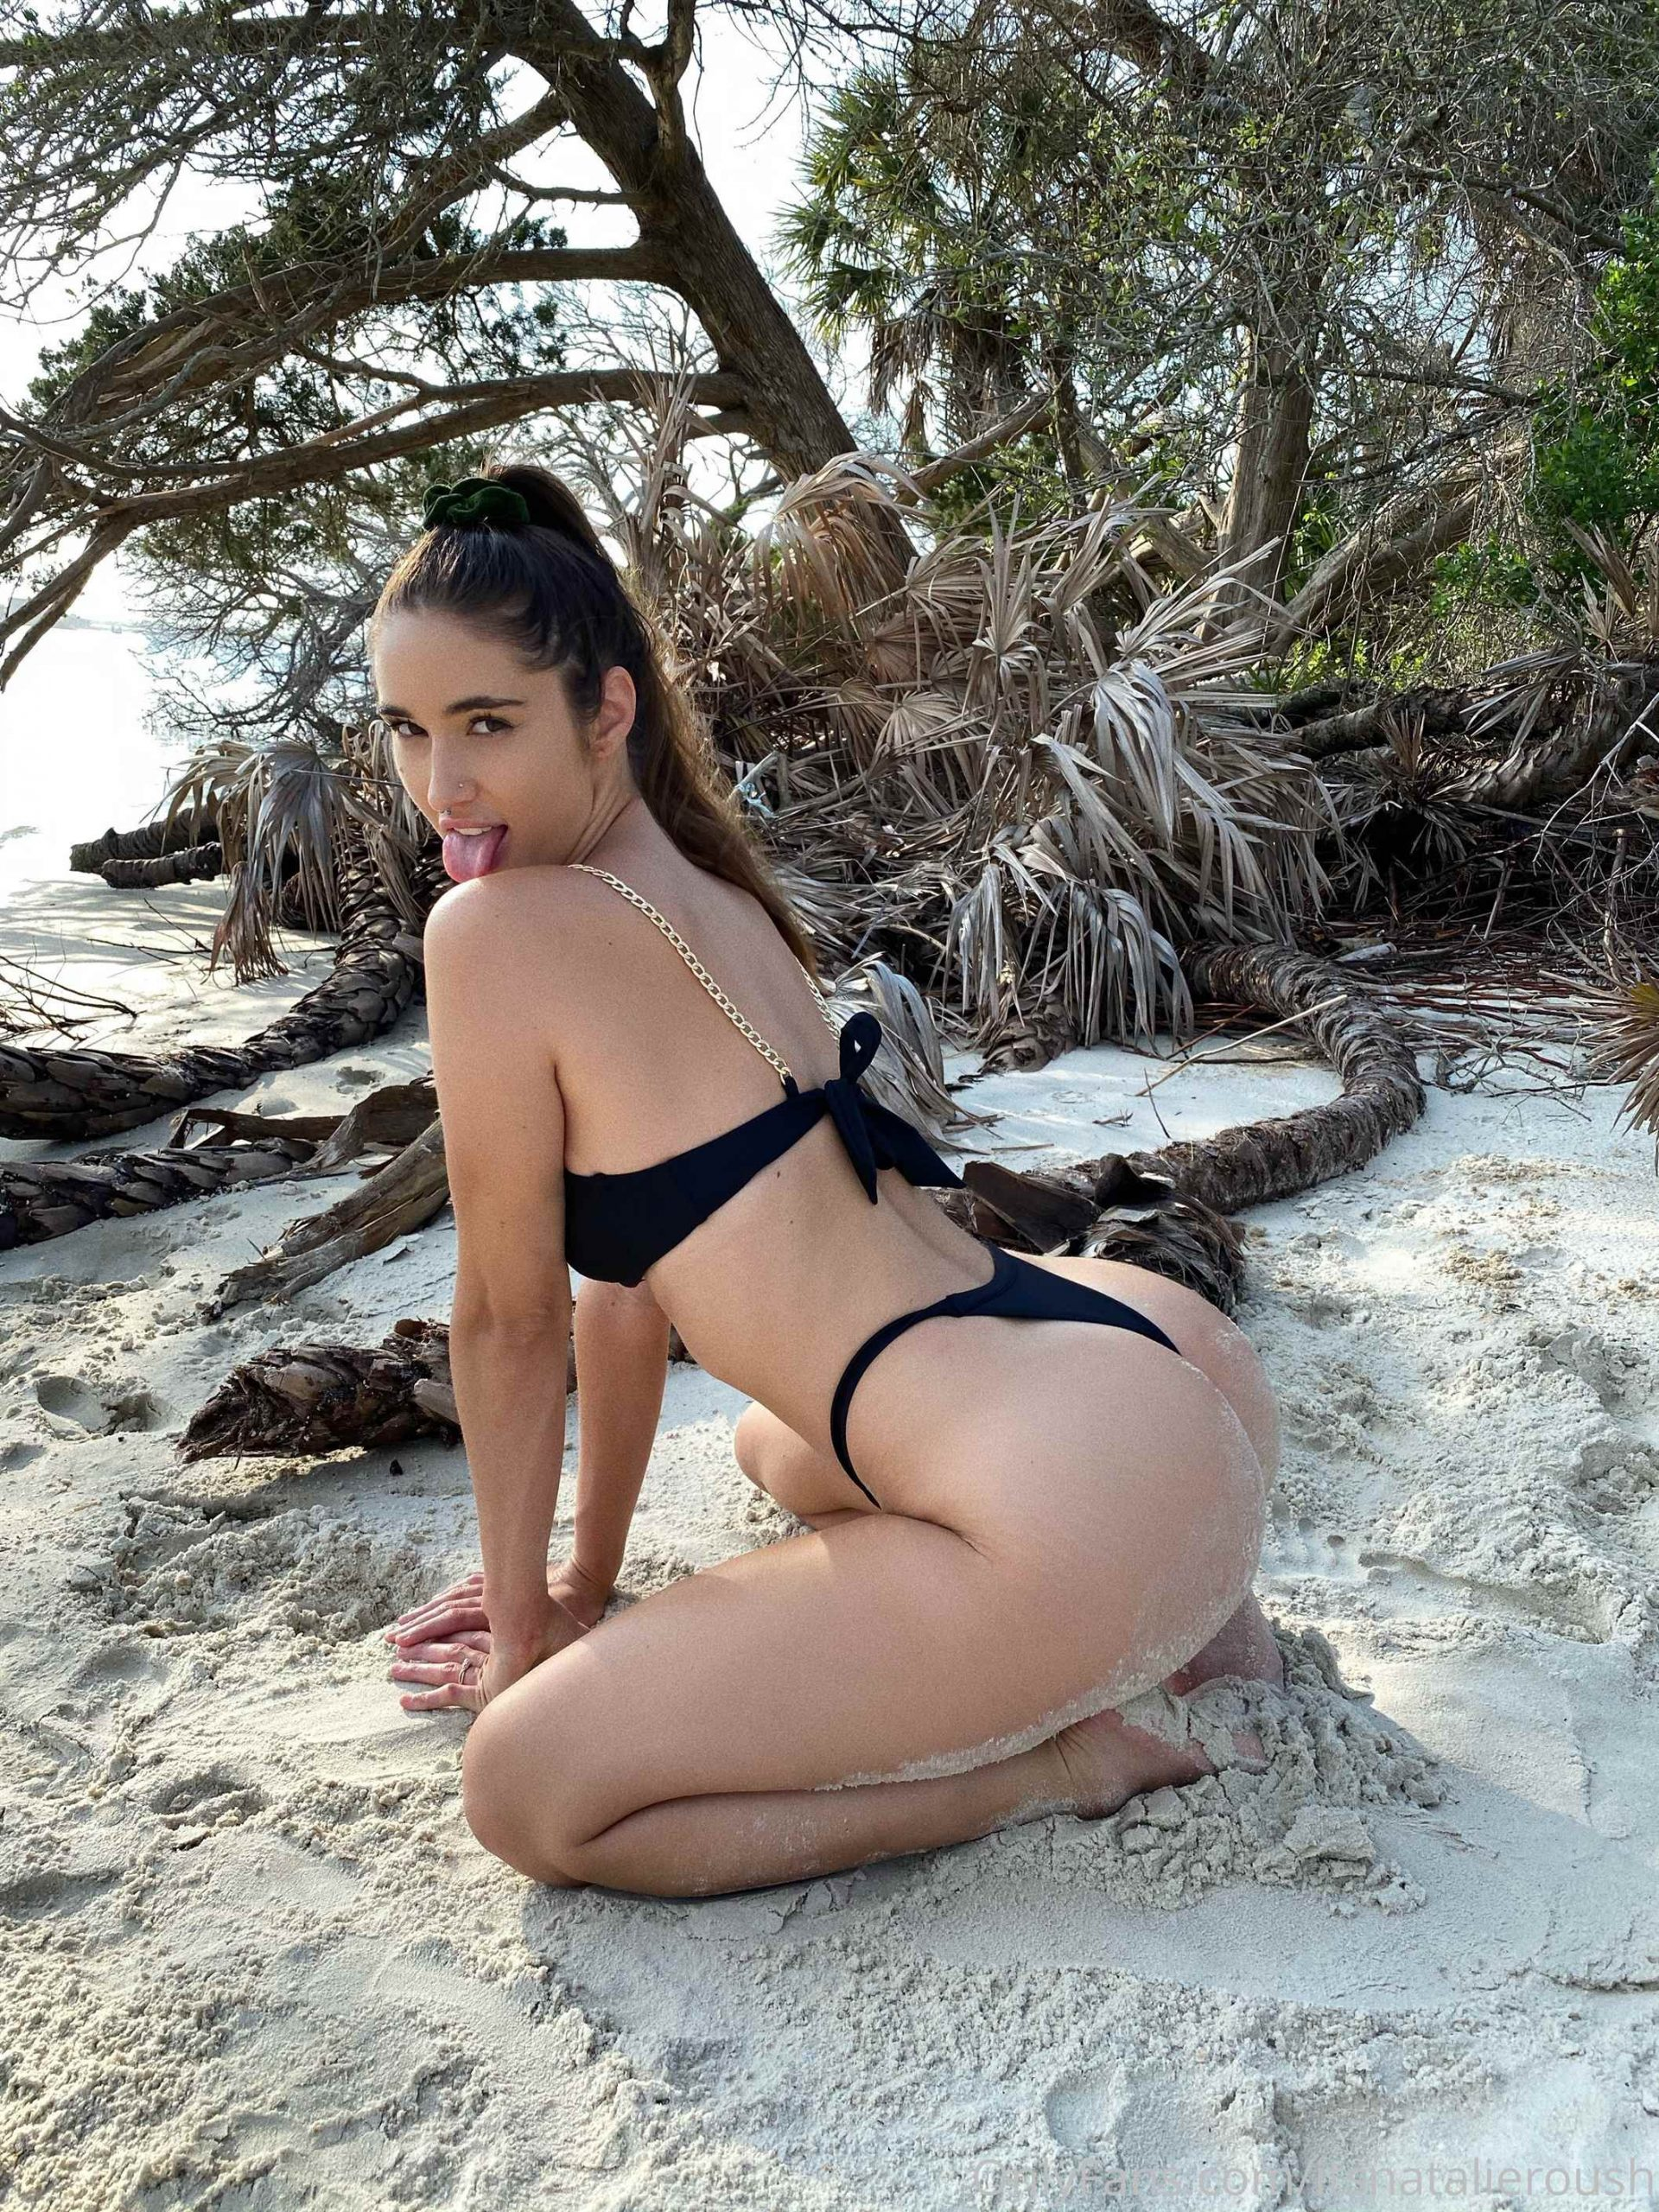 Natalie Roush Nude Leaked Onlyfans Photos 0030